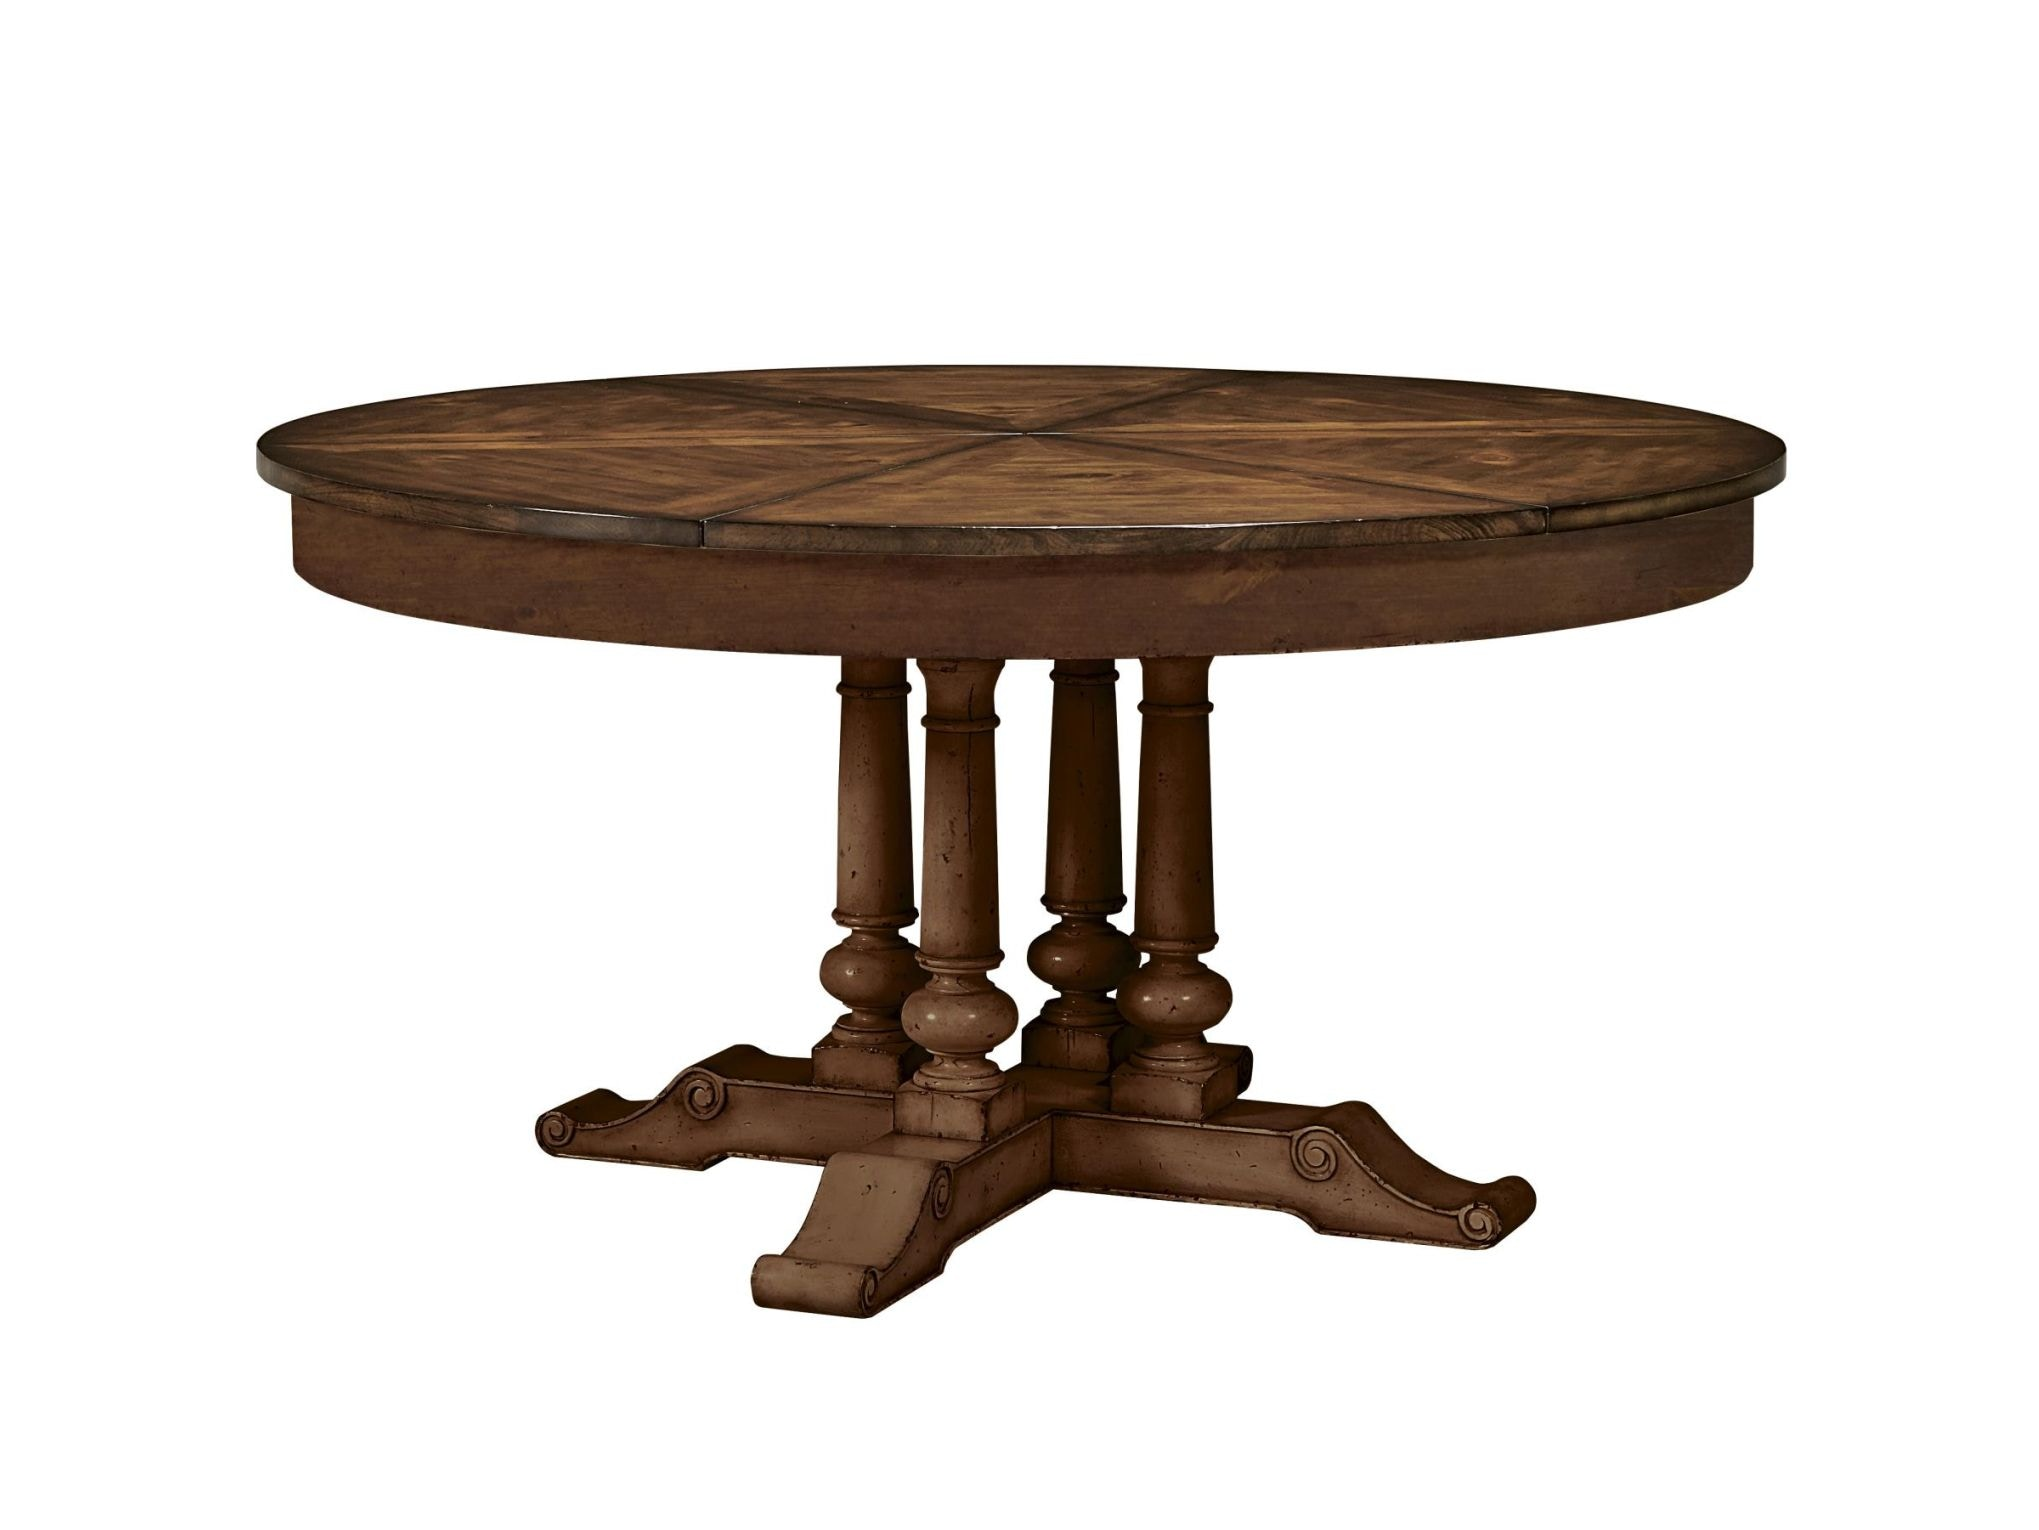 Fine Furniture Design Round Extending Dining Table 1370 810/811